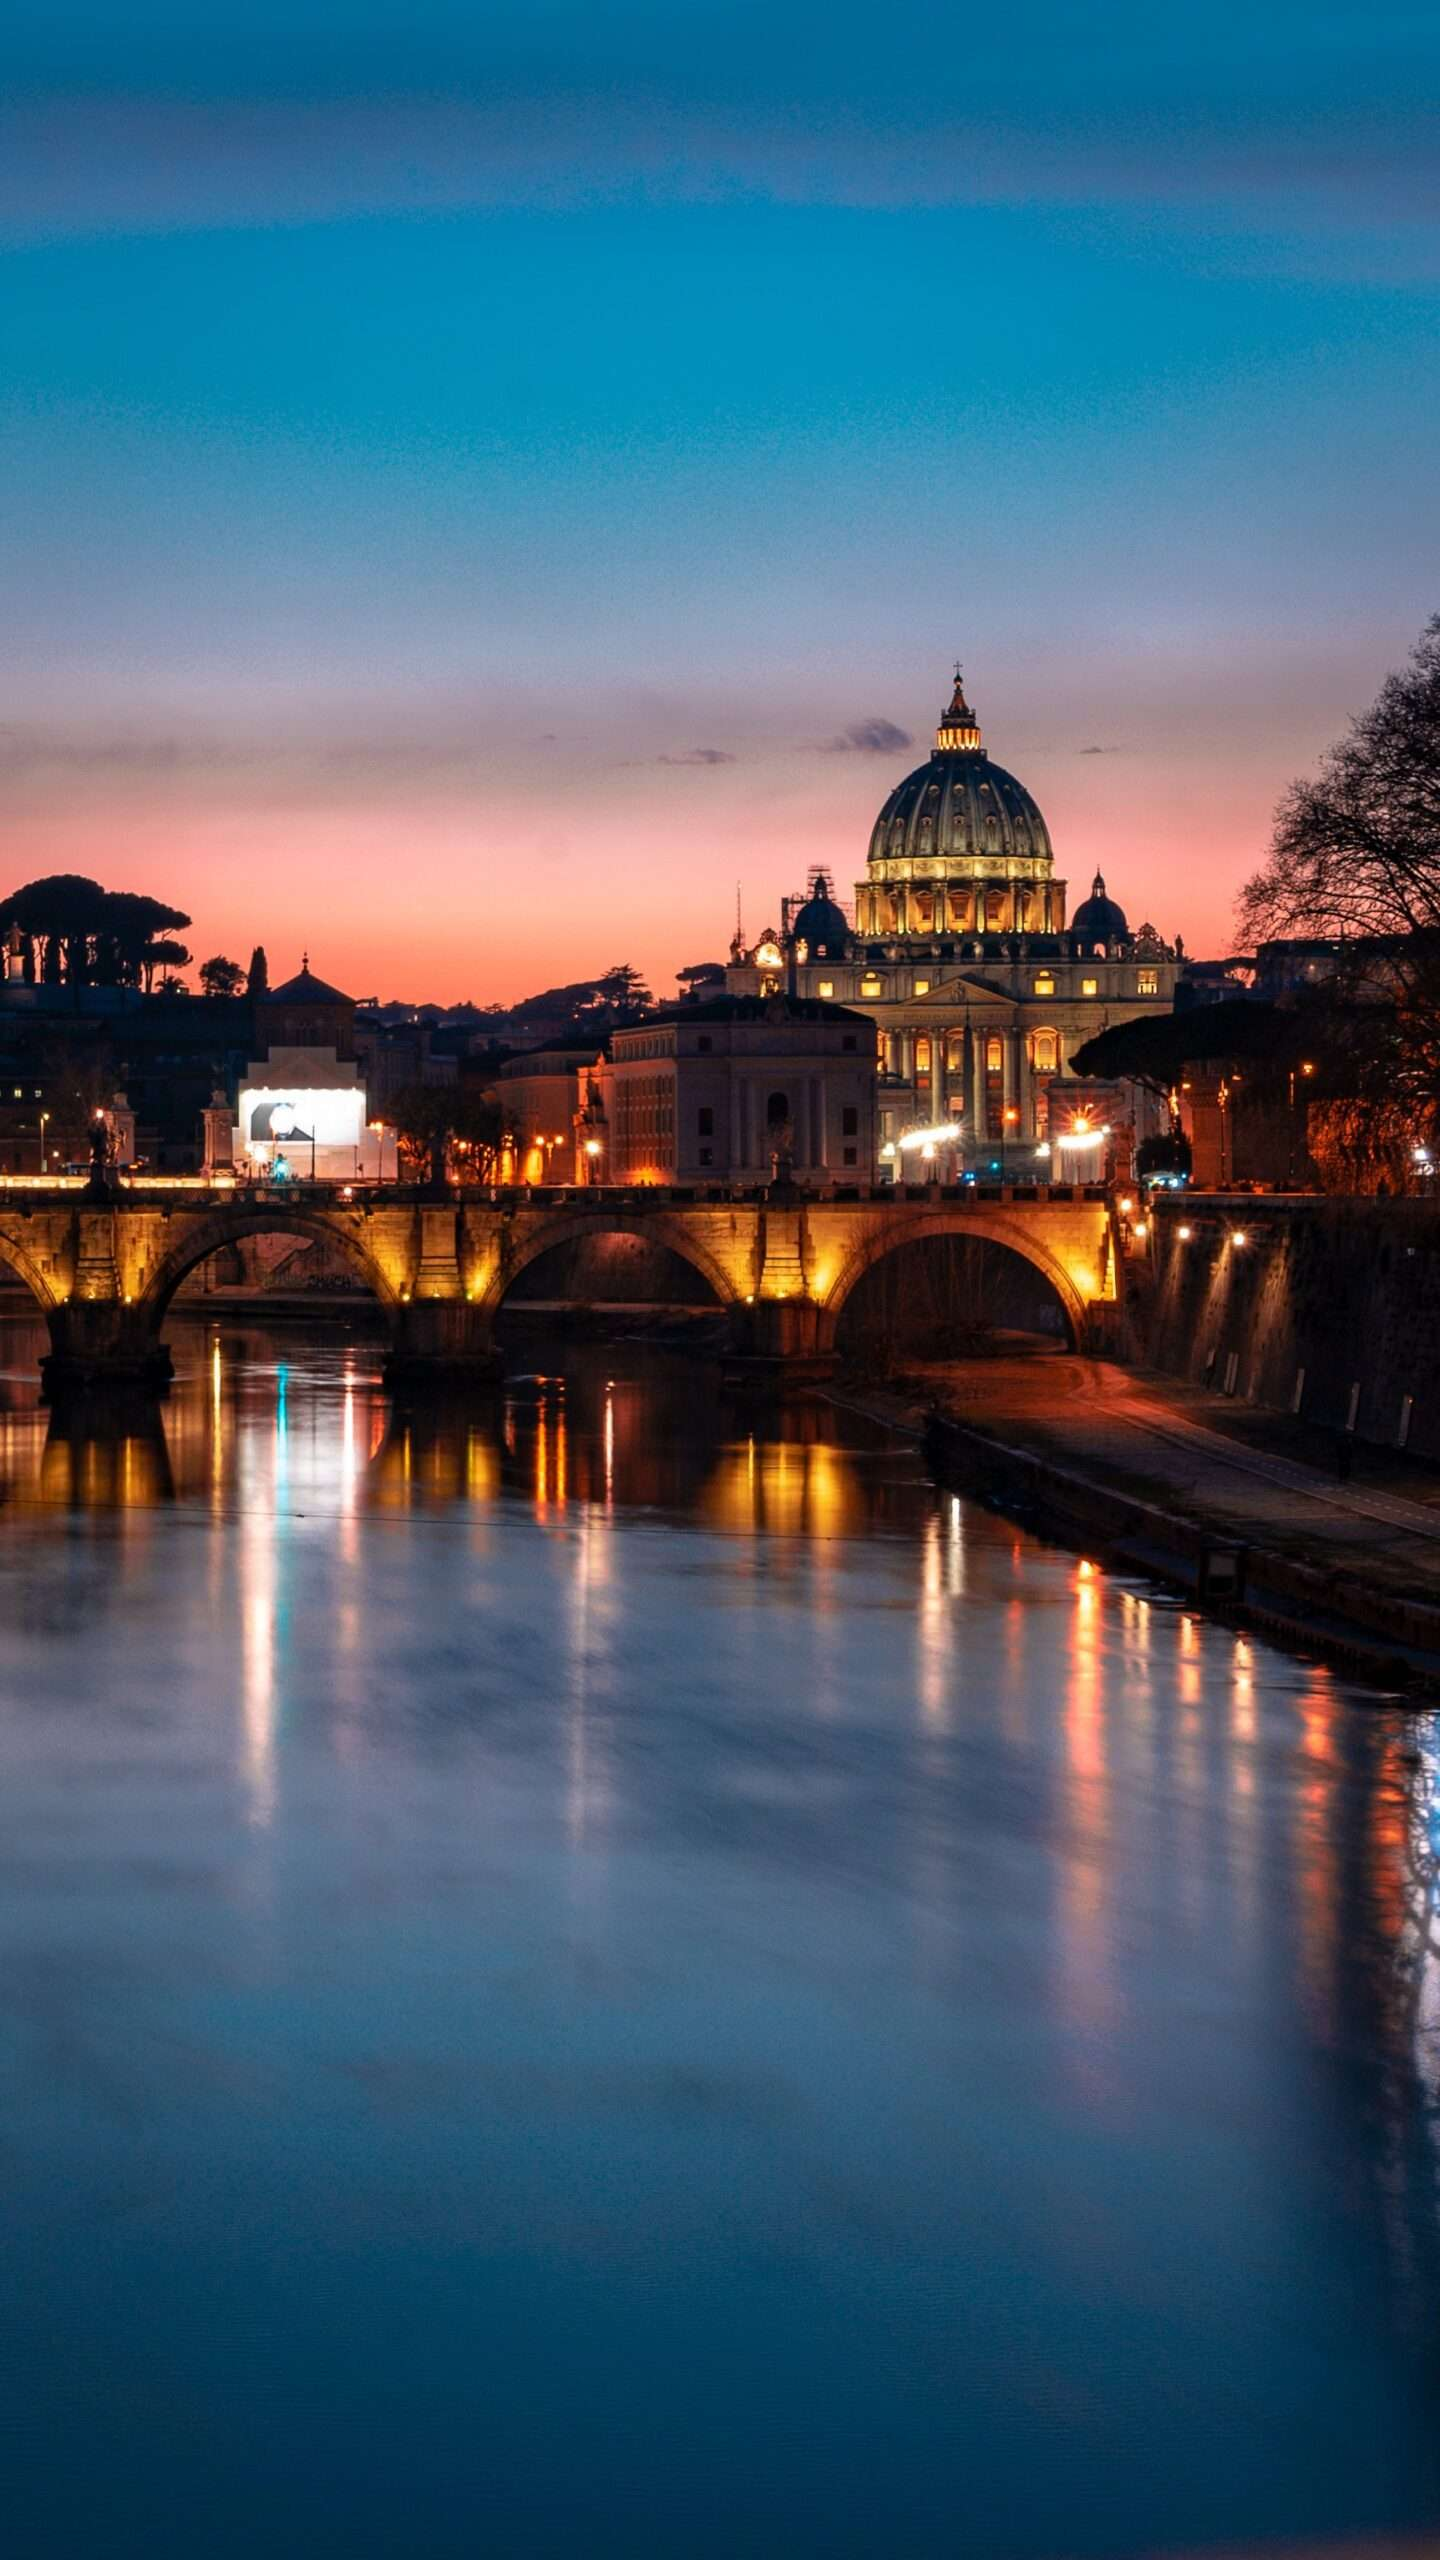 Tiber river at night in Rome with St.Peter's basilica in the background